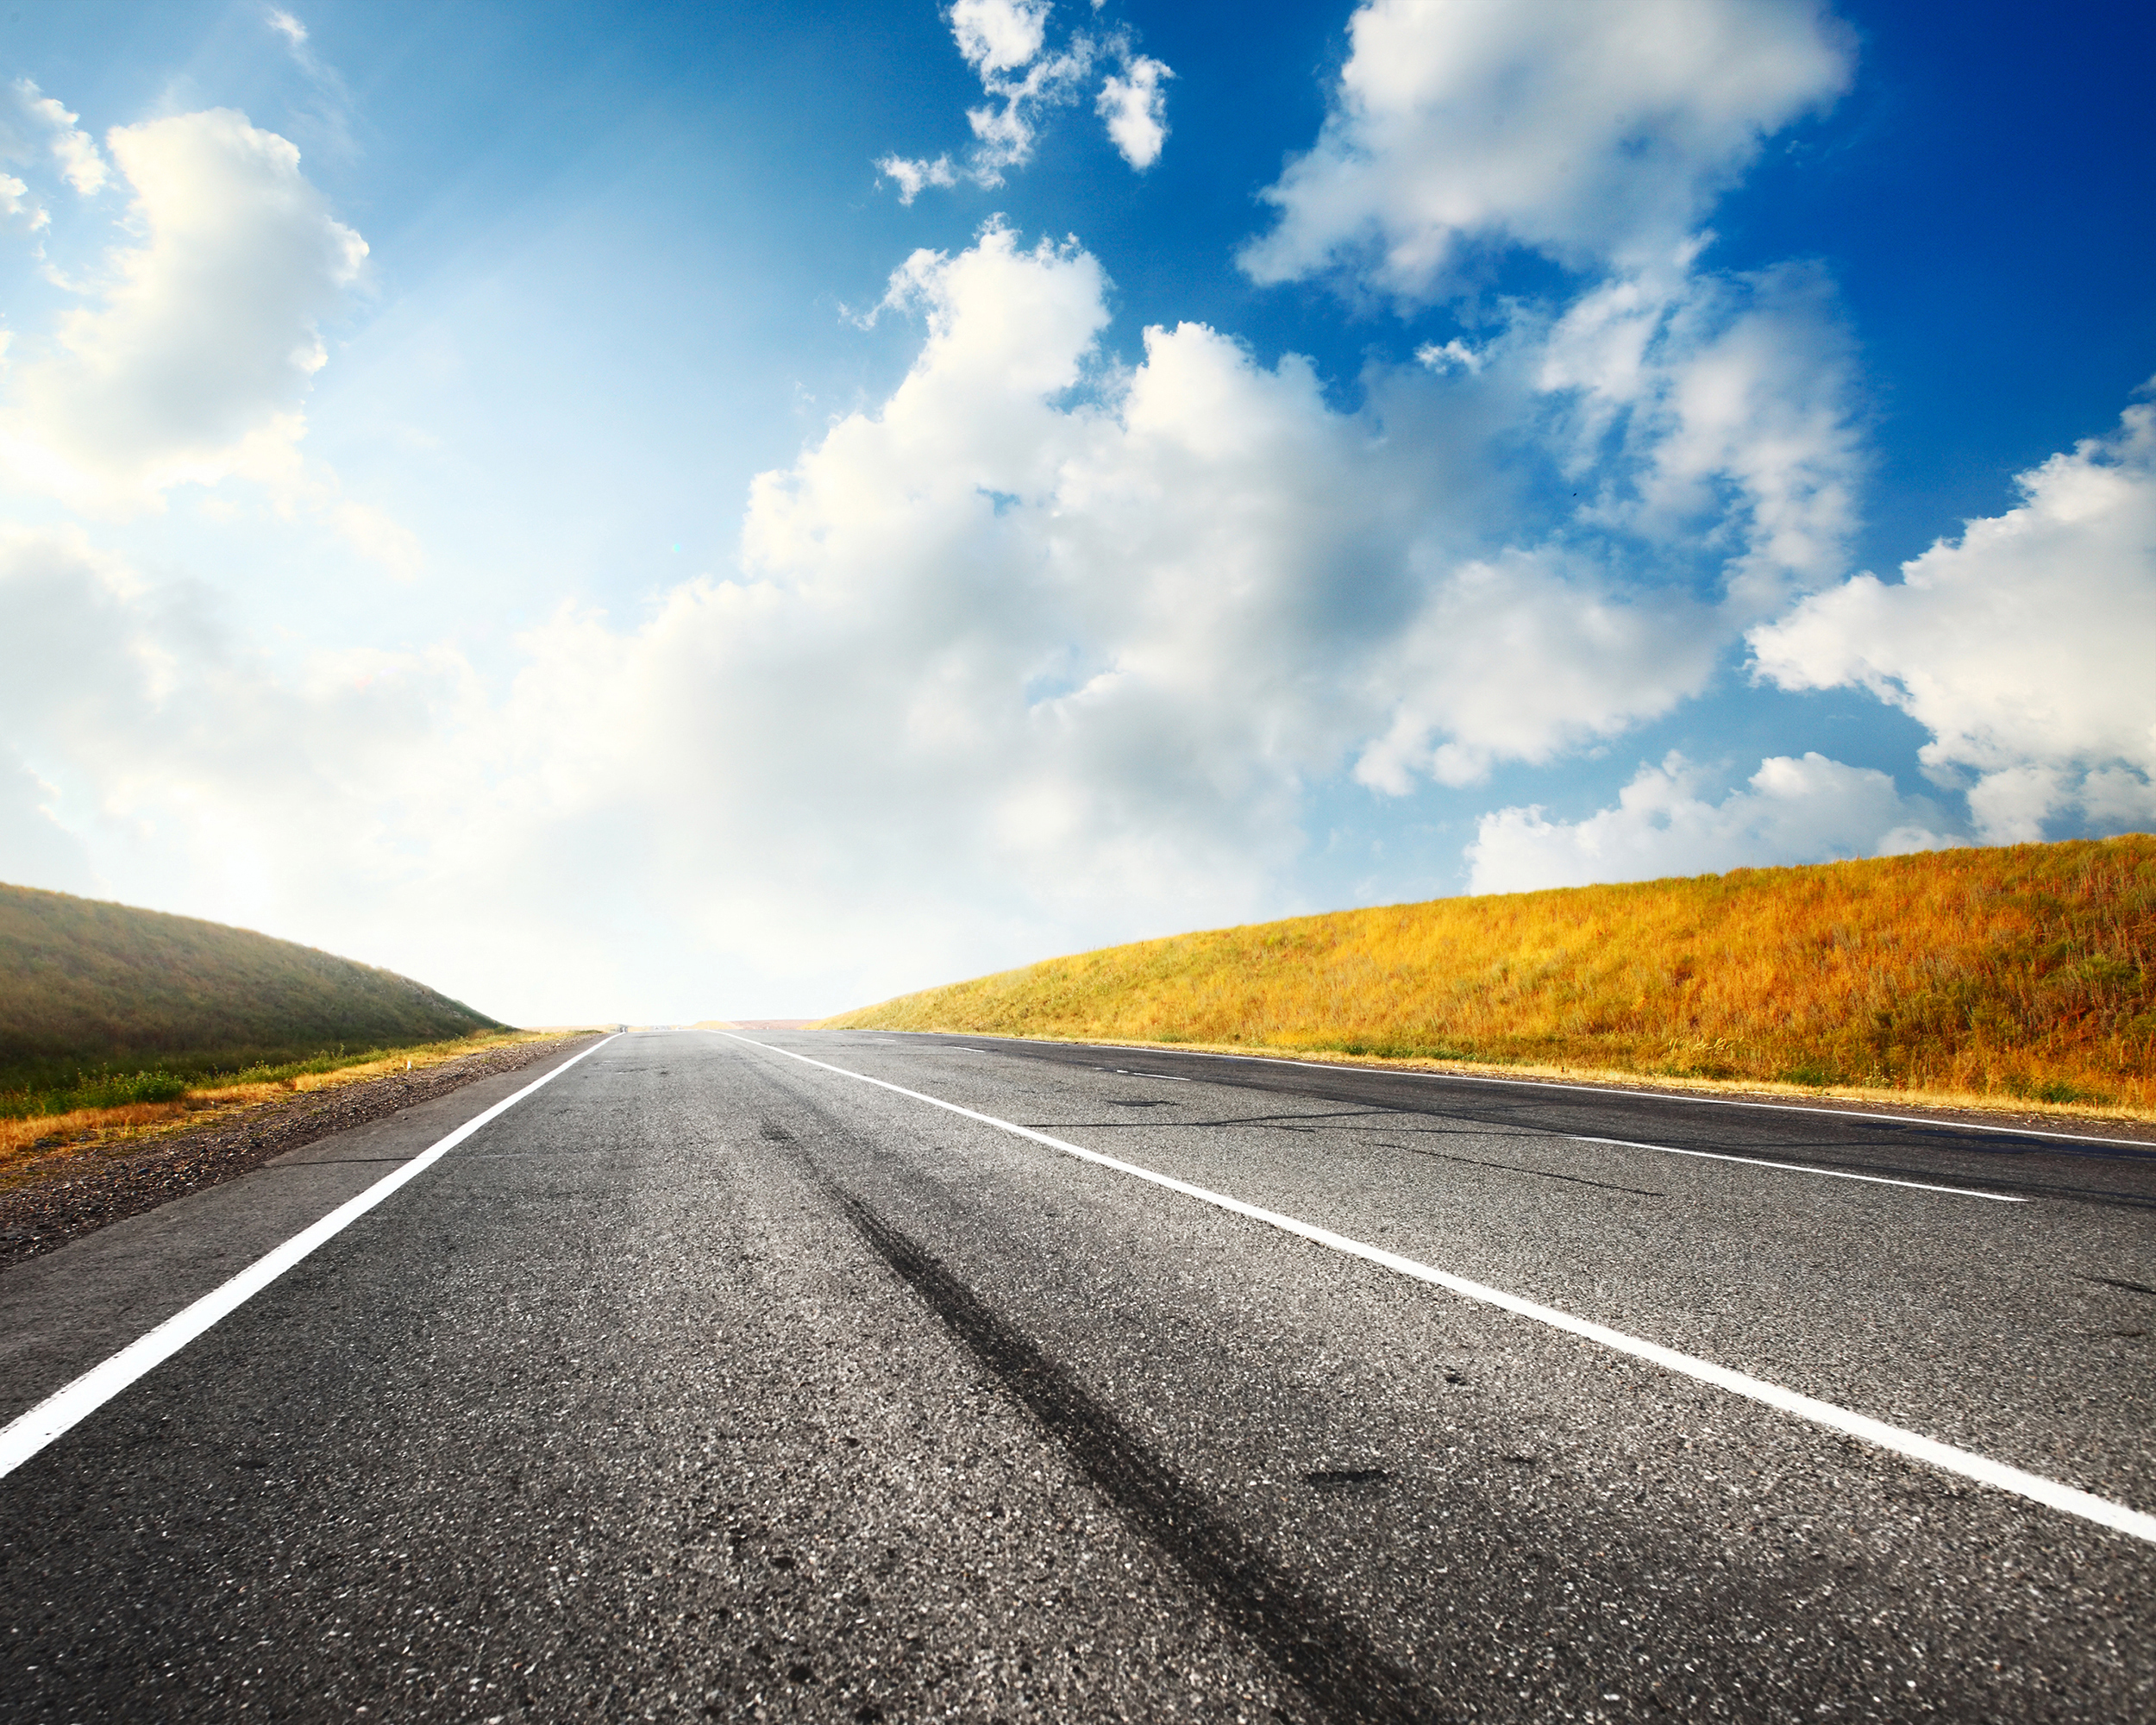 ARTBA Earth Day 2015 Message: Transportation Industry Helping Pave ...